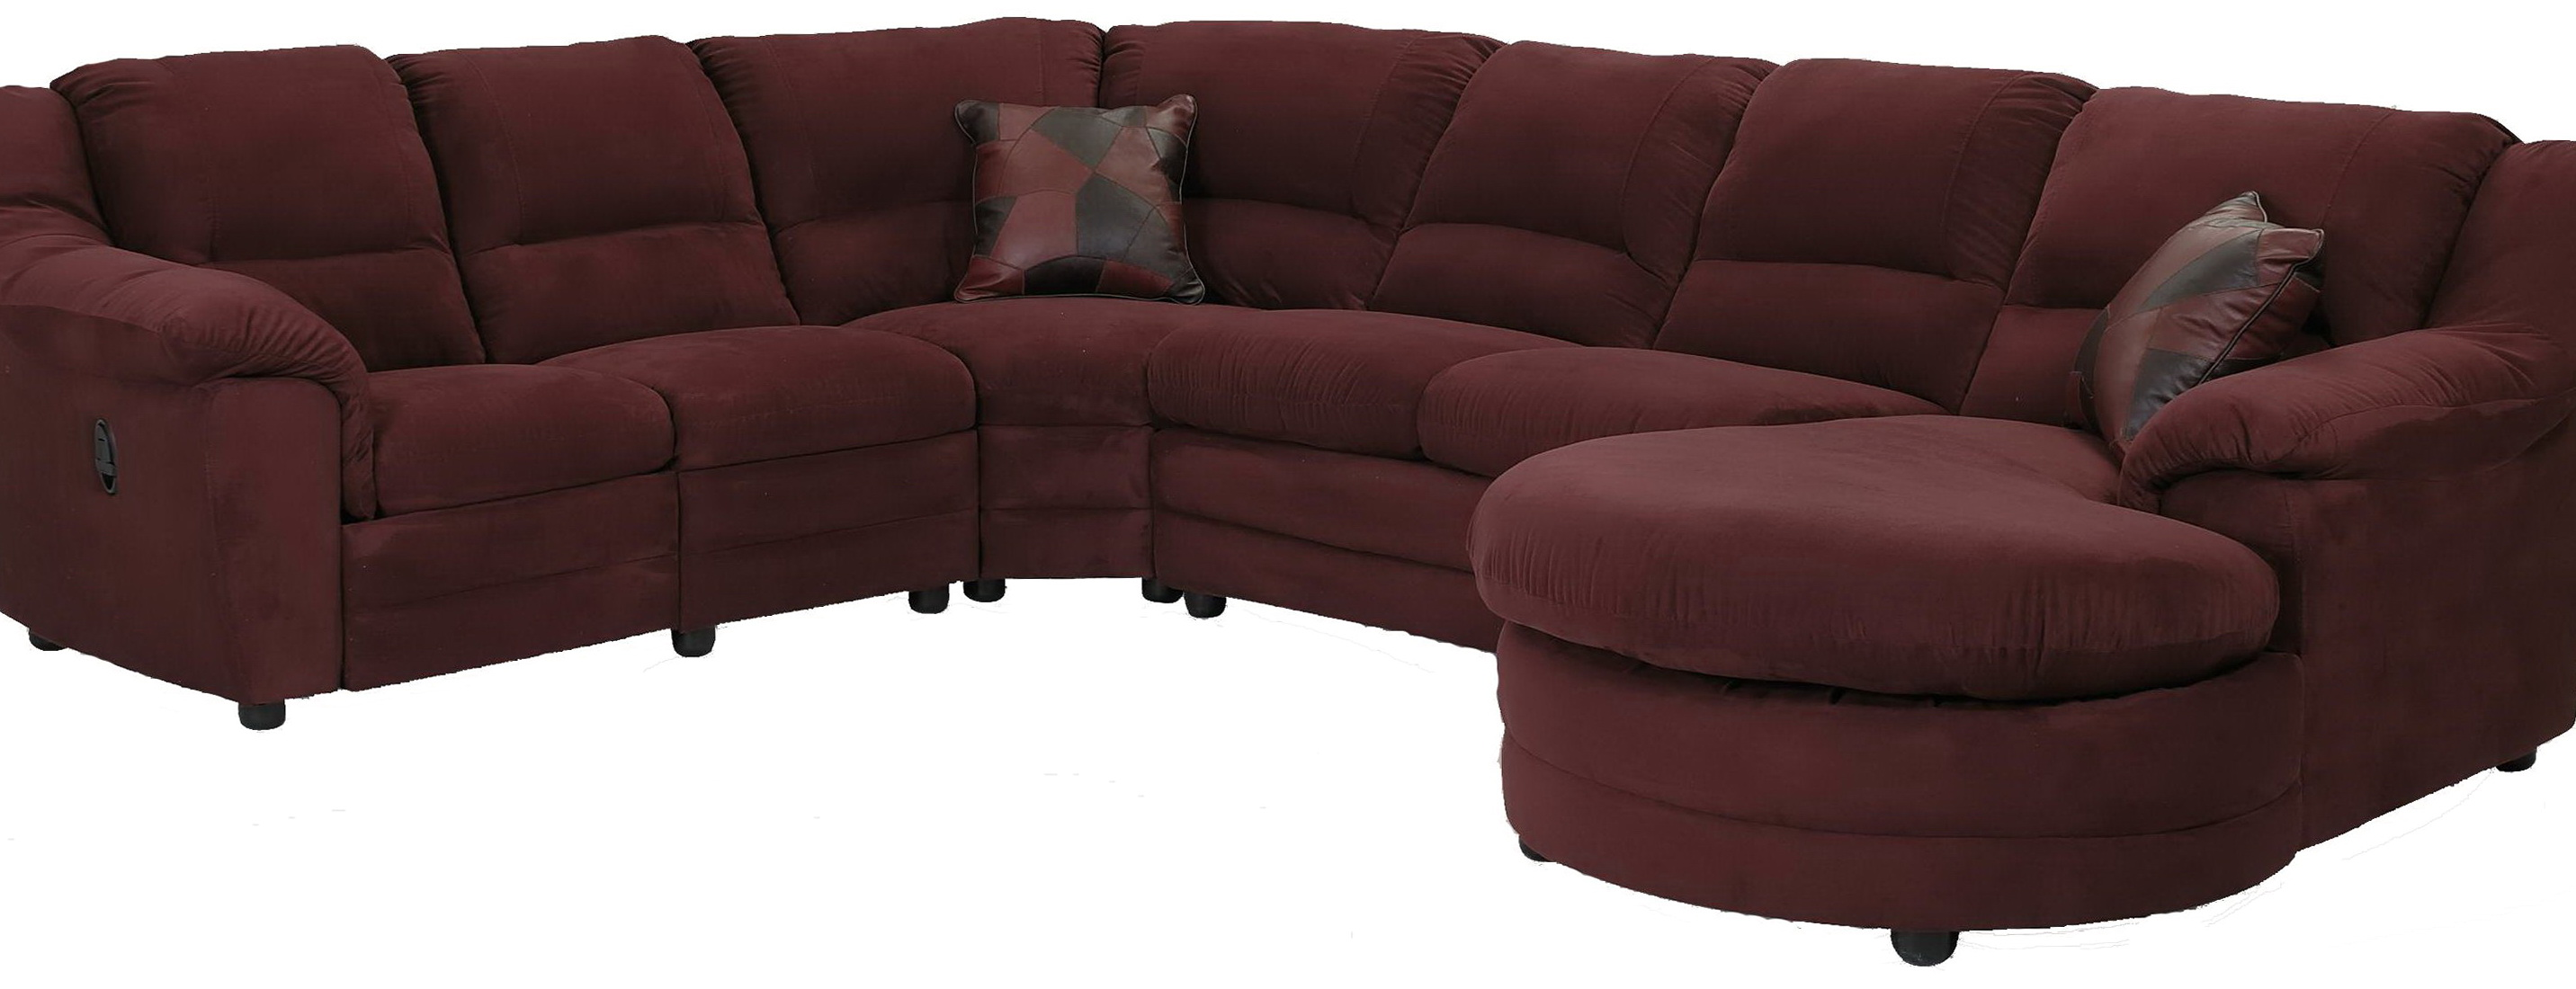 Dagstorp Loveseat And Chaise Lounge